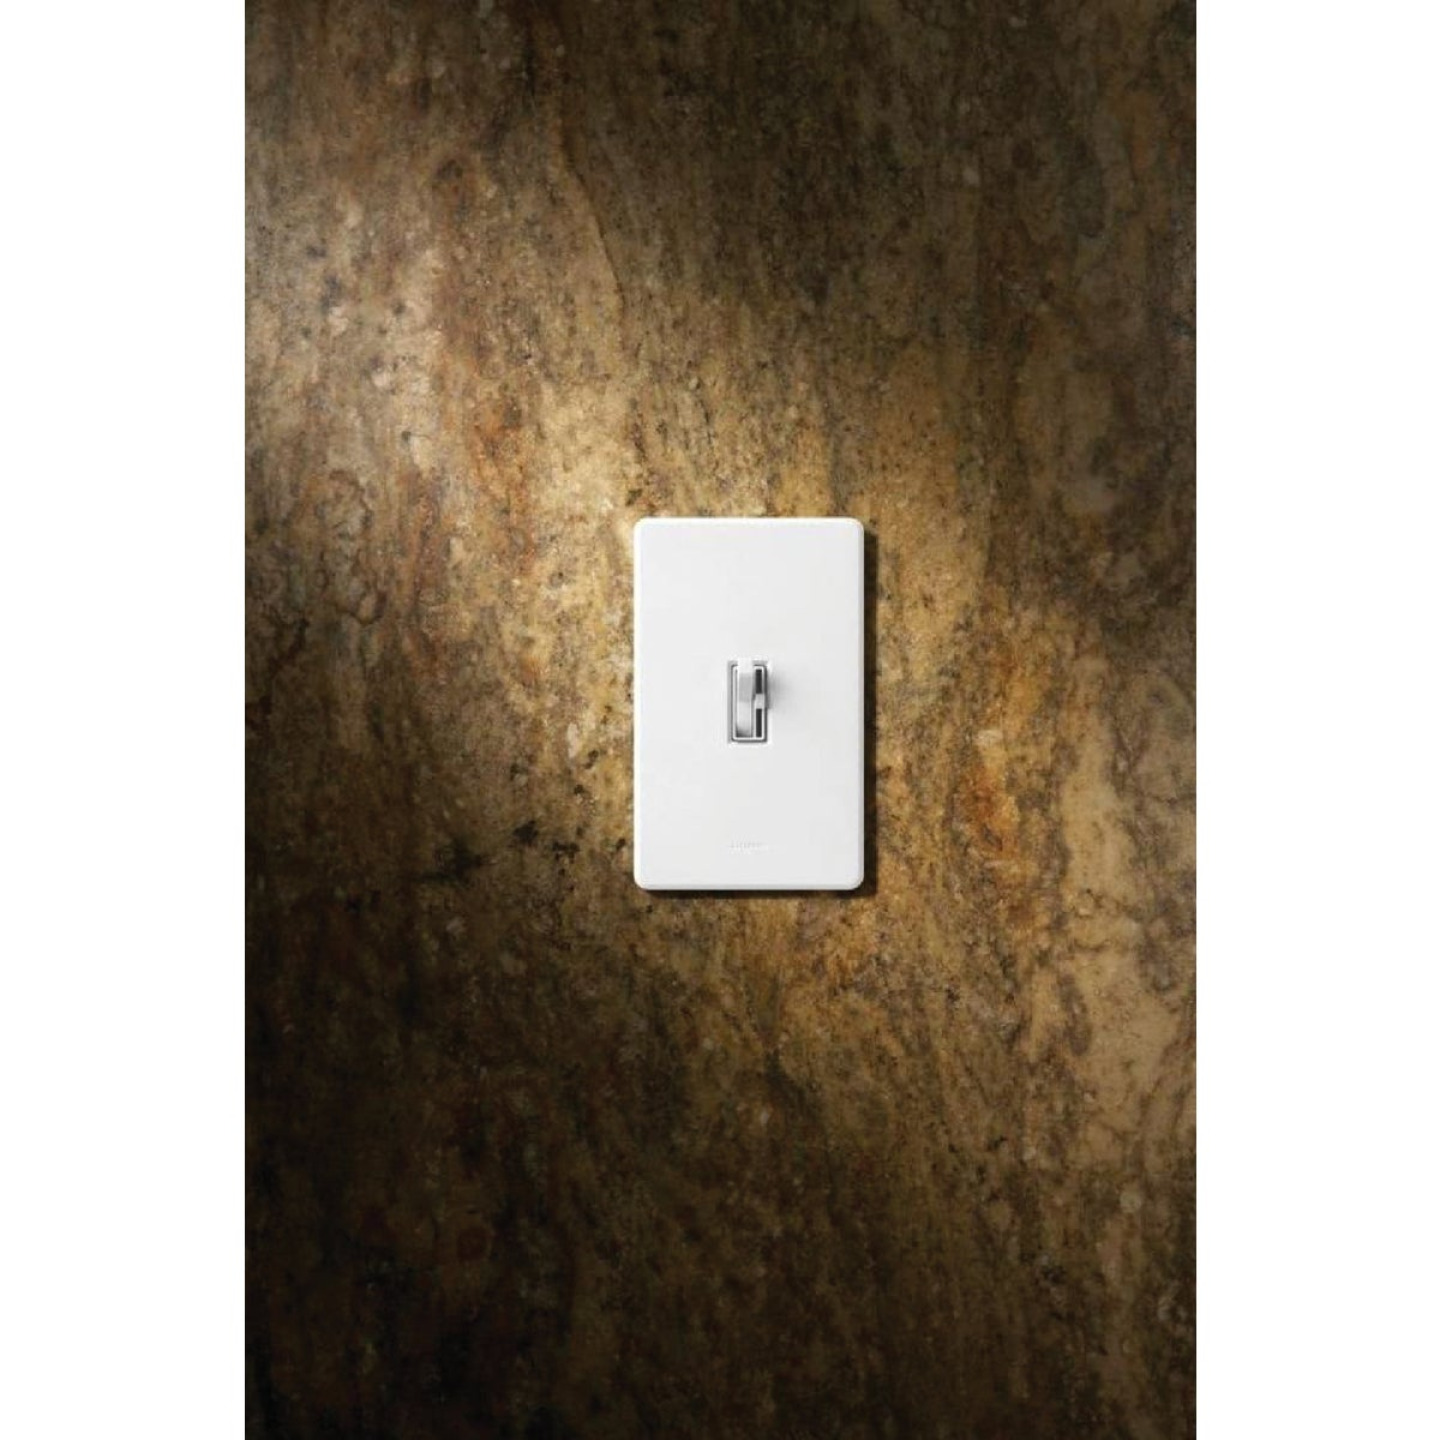 Lutron Toggler Incandescent/Halogen/LED/CFL White Slide Dimmer Switch Image 8